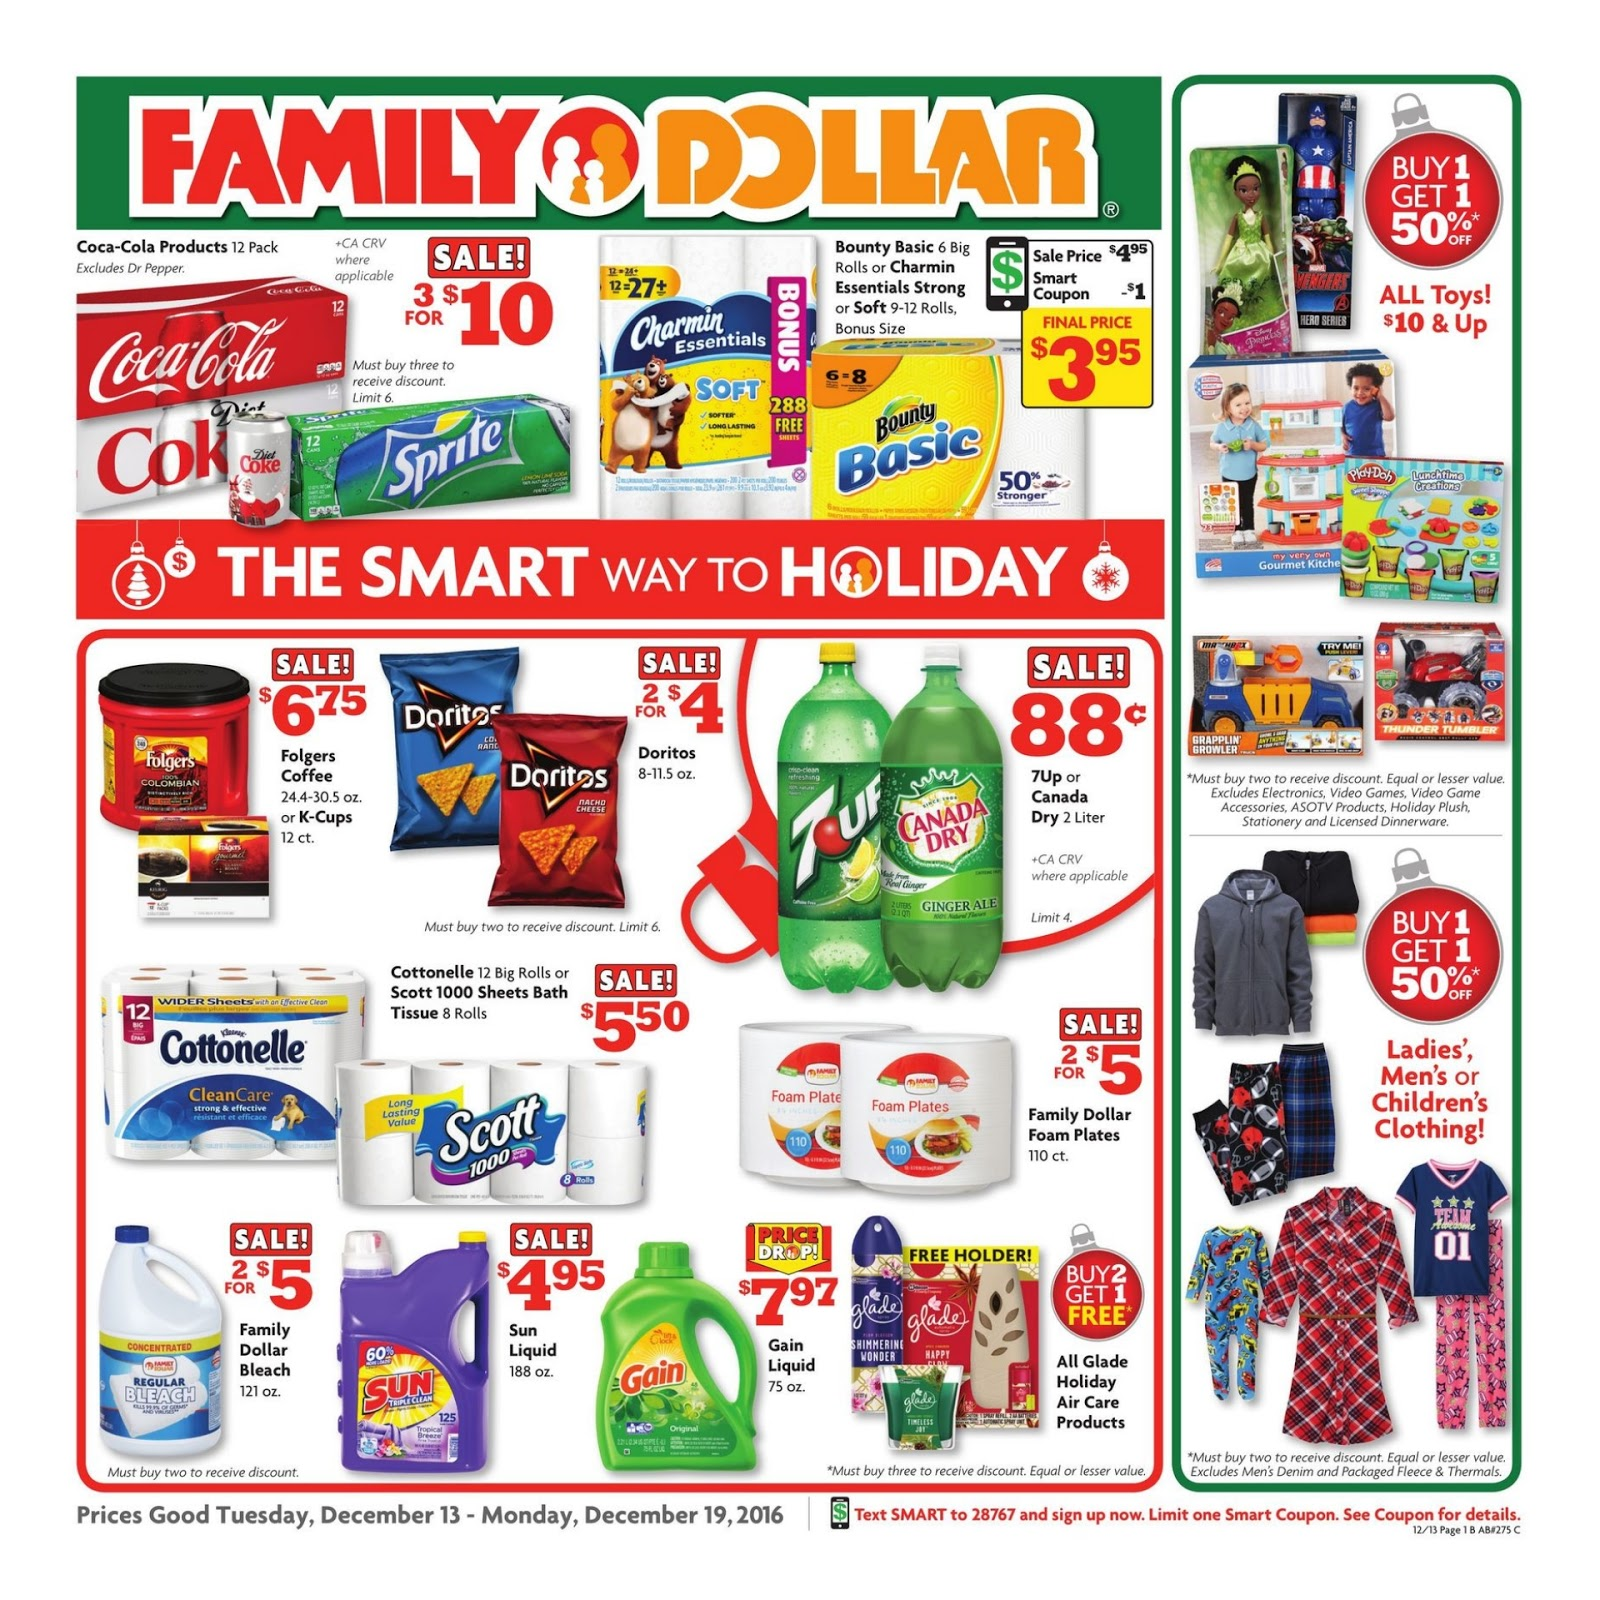 Find the latest weekly circular ad & Sunday flyer for Family Dollar here. Also, save with coupons and the latest deals from Family Dollar.